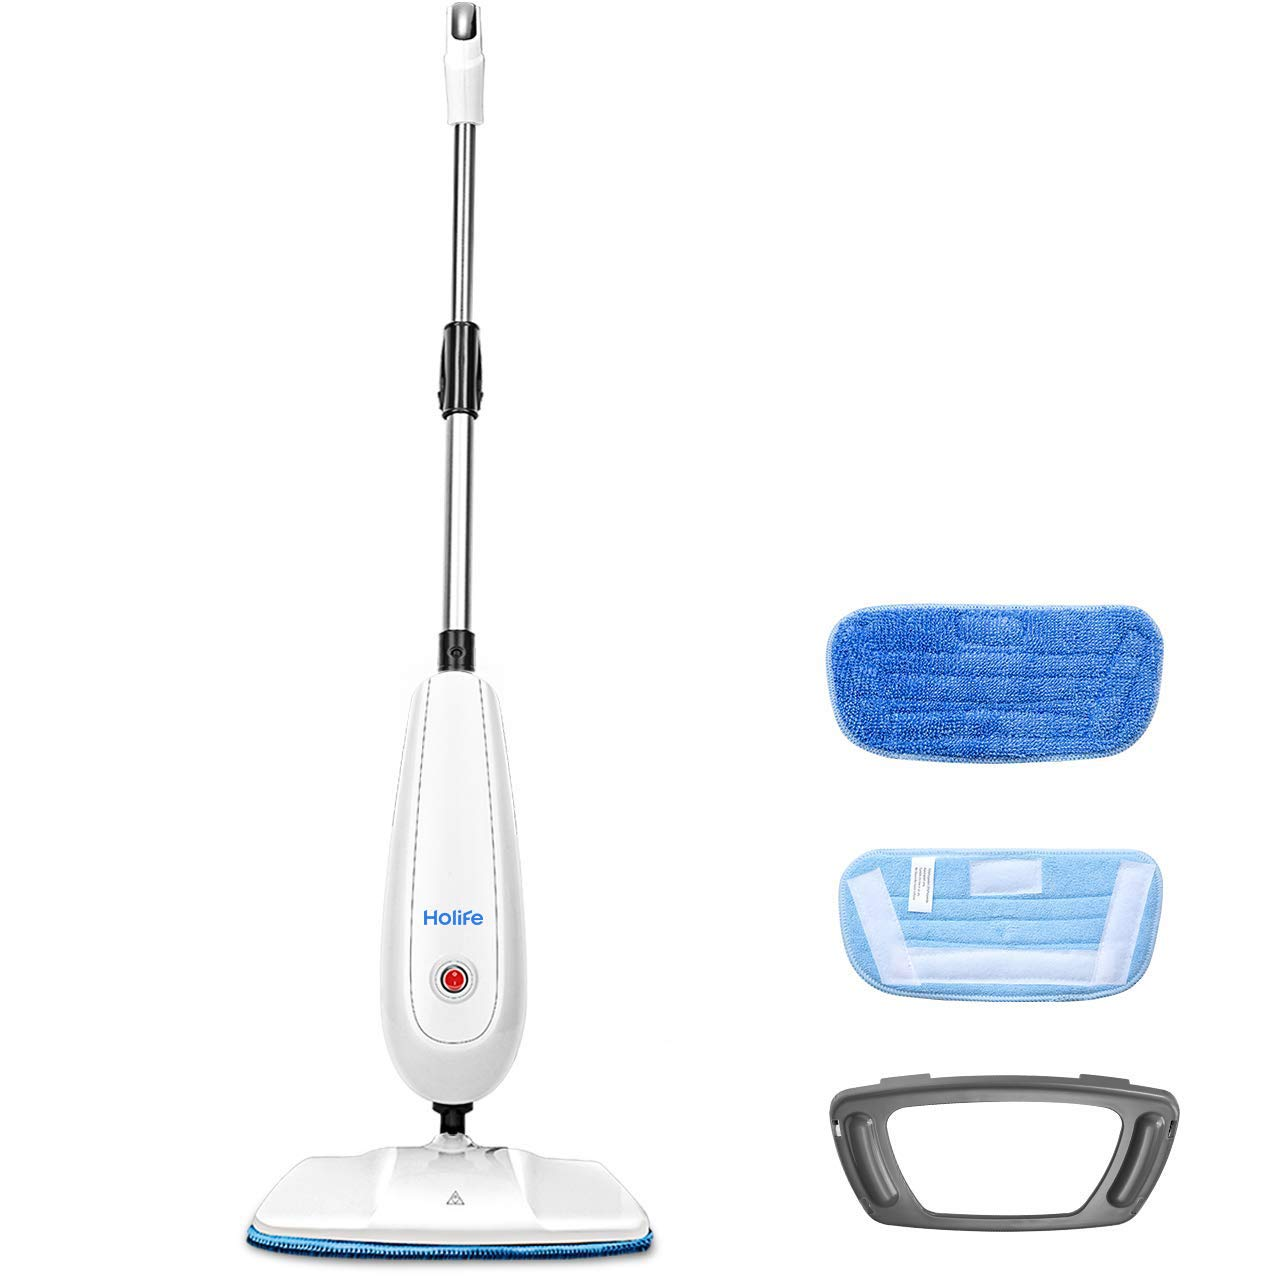 Holife Steam Mop Floor Steamer Cleaner, Tile and Hard Wood Floor Cleaner with 2 Microfiber Pads, Carpet Glider and Measuring Cup, Multipurpose Use for Cleaning Laminate/Hardwood/Tiles/Carpet